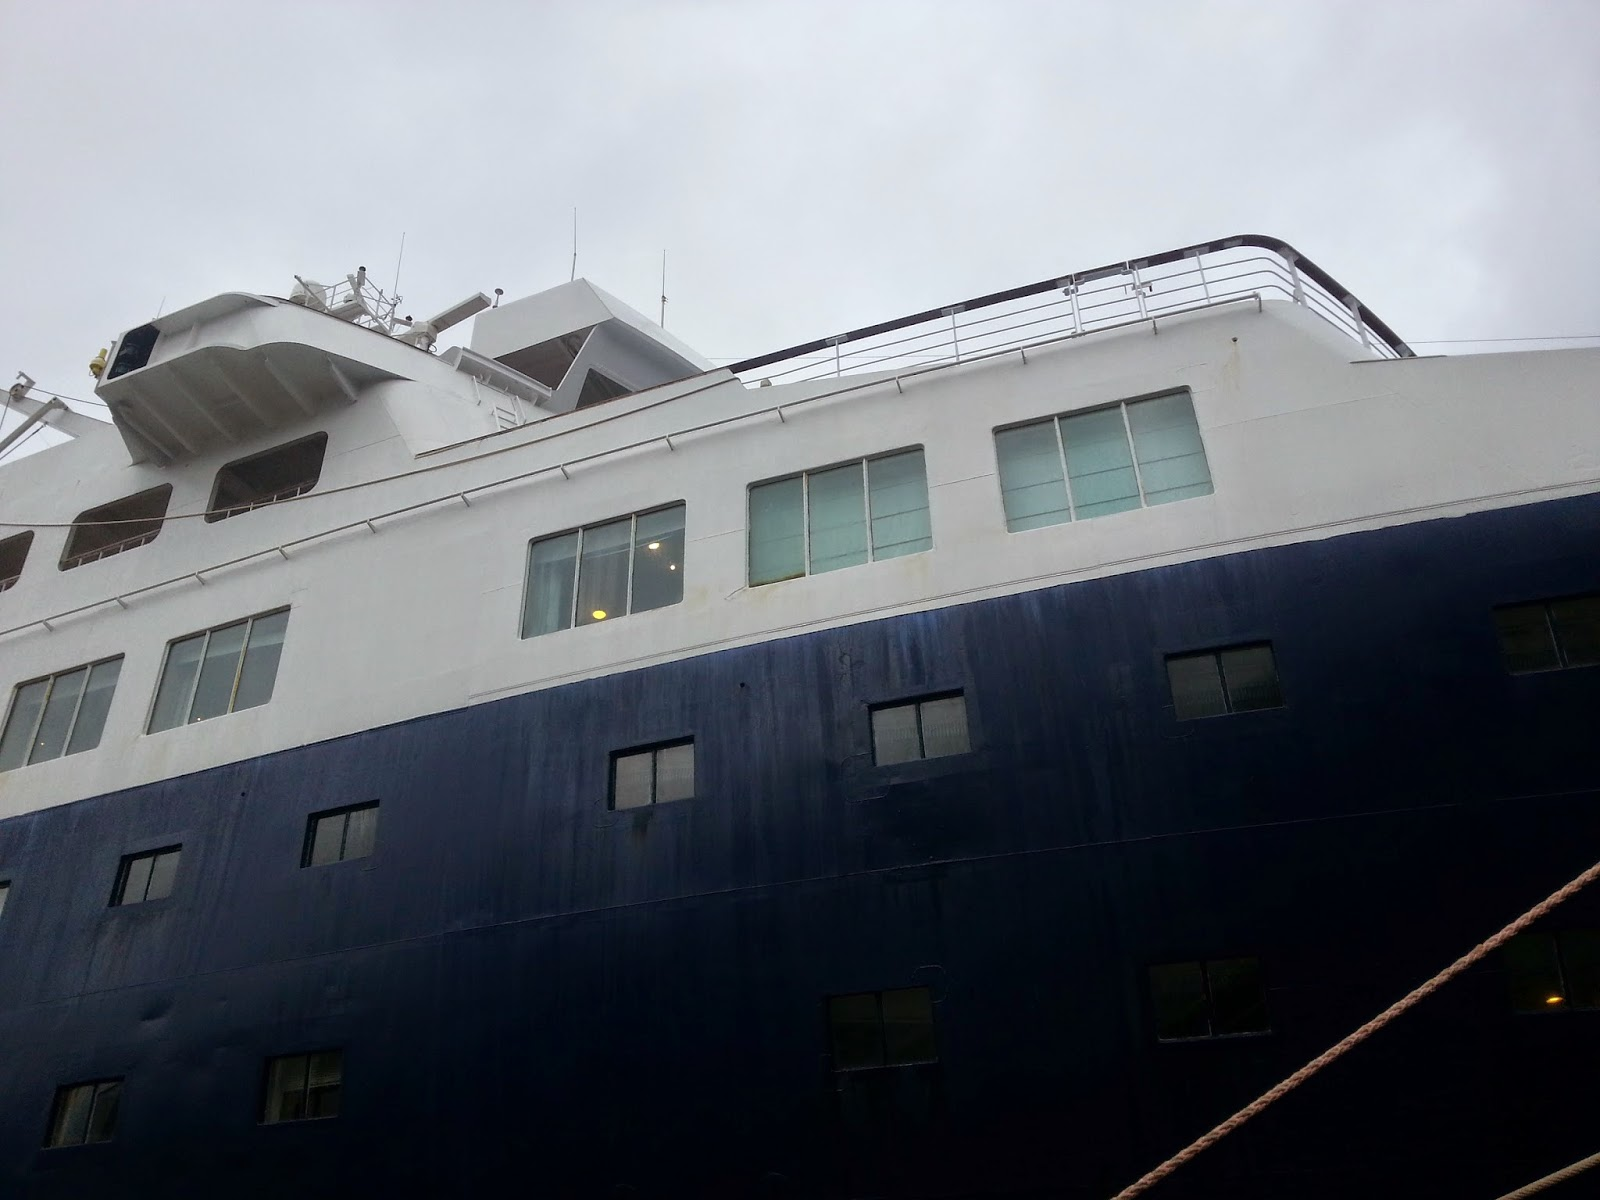 Cruise Ship Saga Pearl II in Bergen, Norway